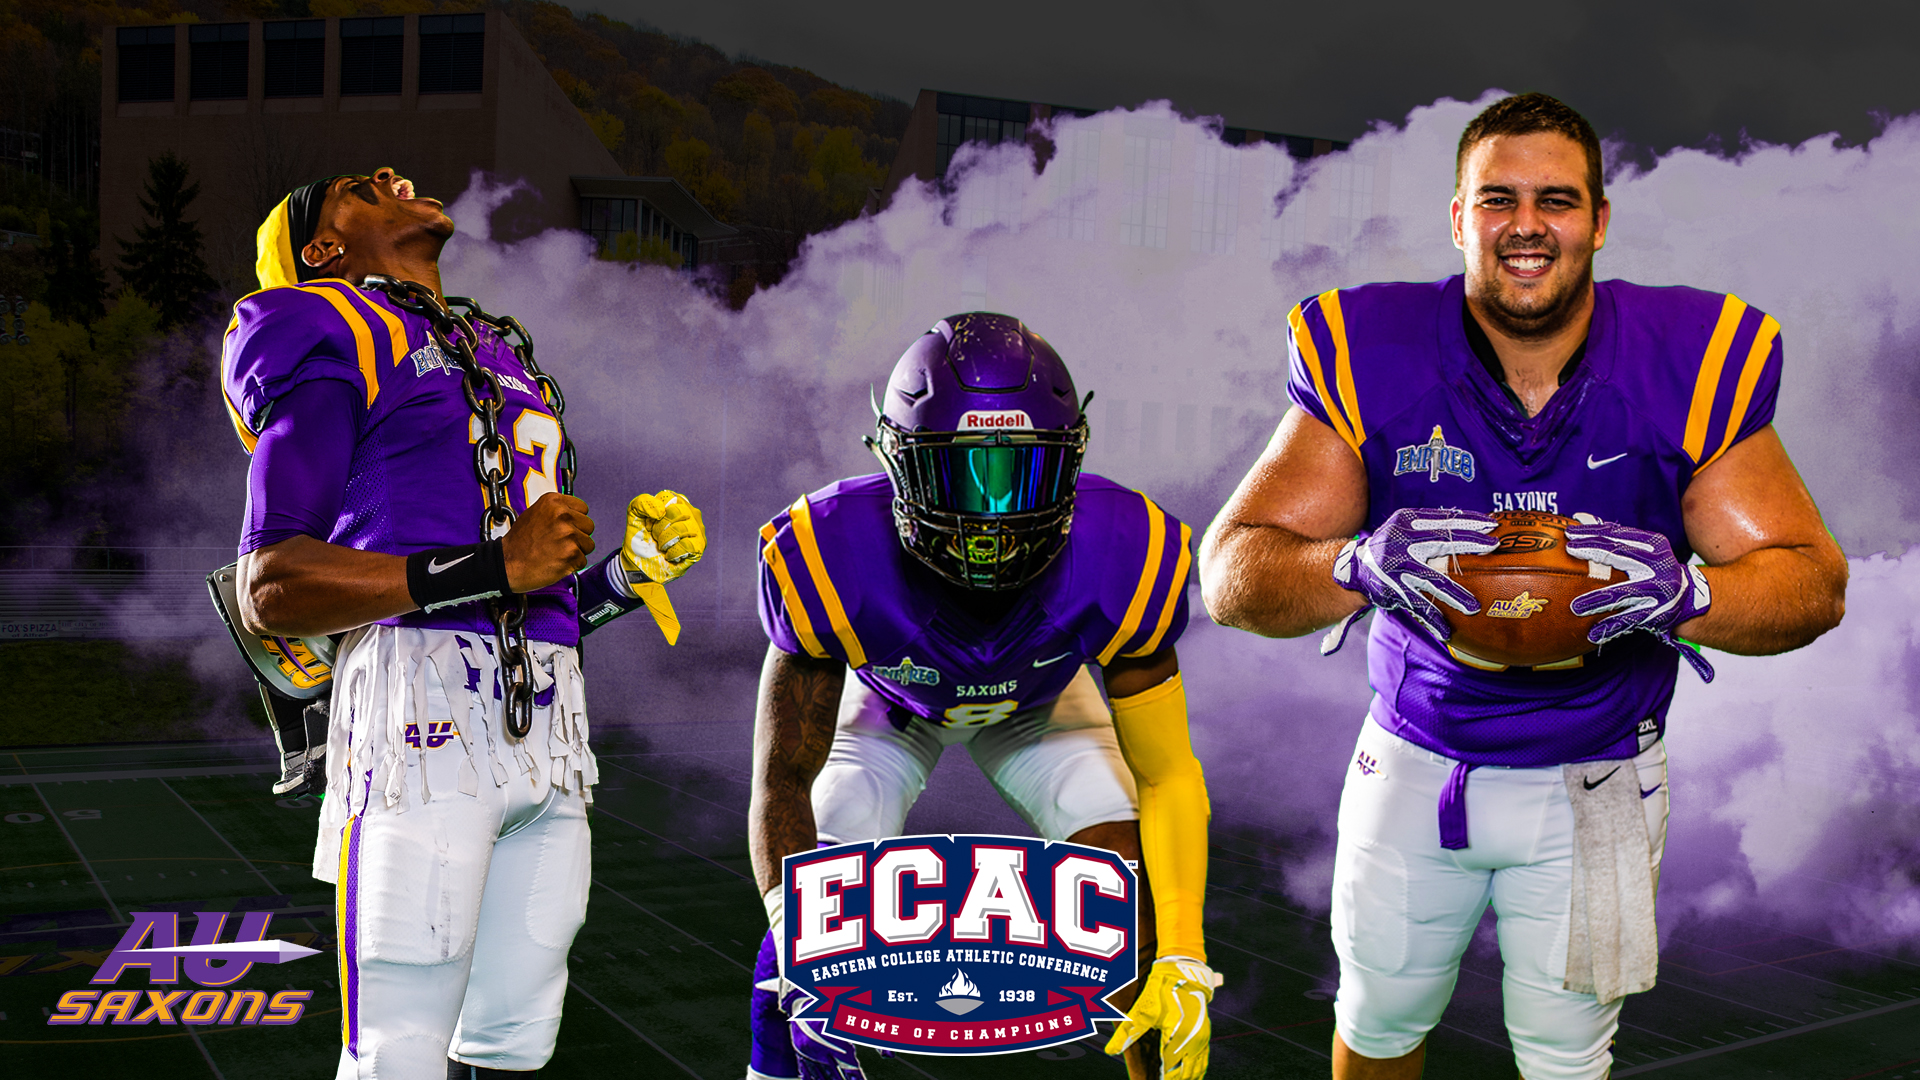 Saxons To Play Ecac Bowl Against Former E8 Foe Salisbury Alfred